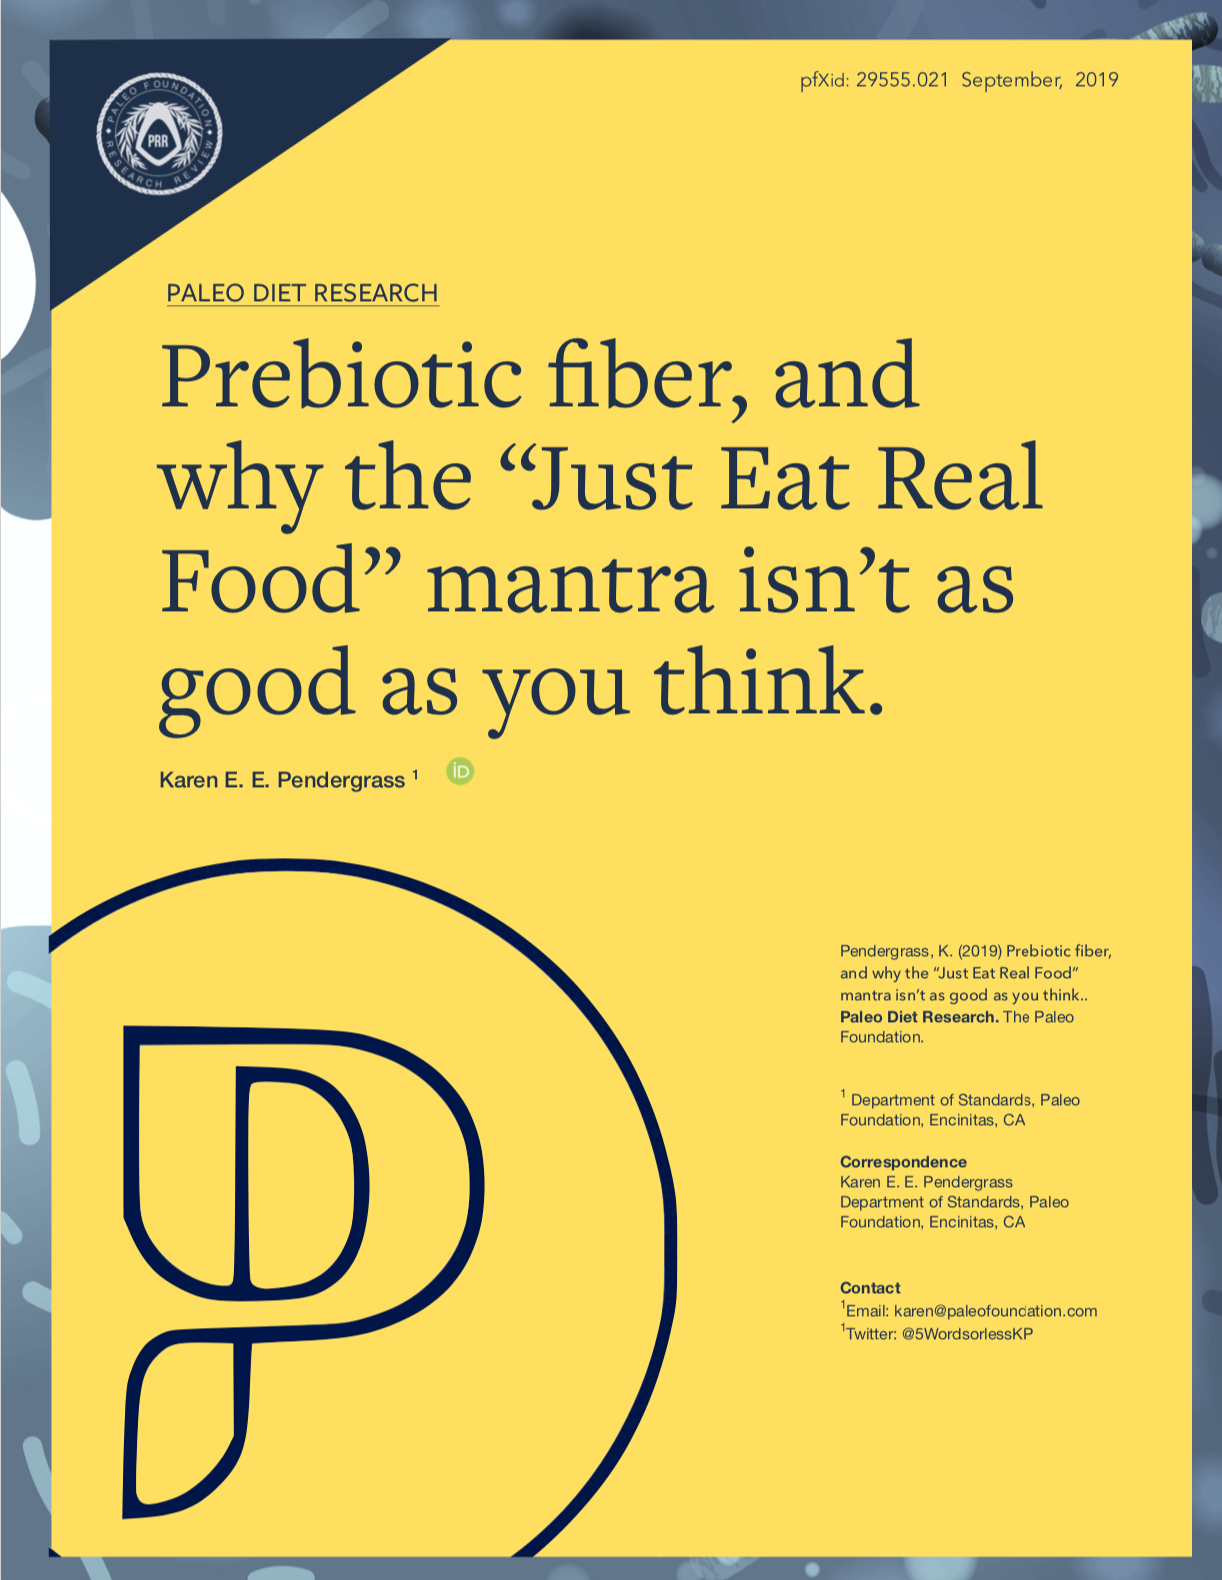 prebiotic fiber and why the just eat real food mantra isnt as good as you think